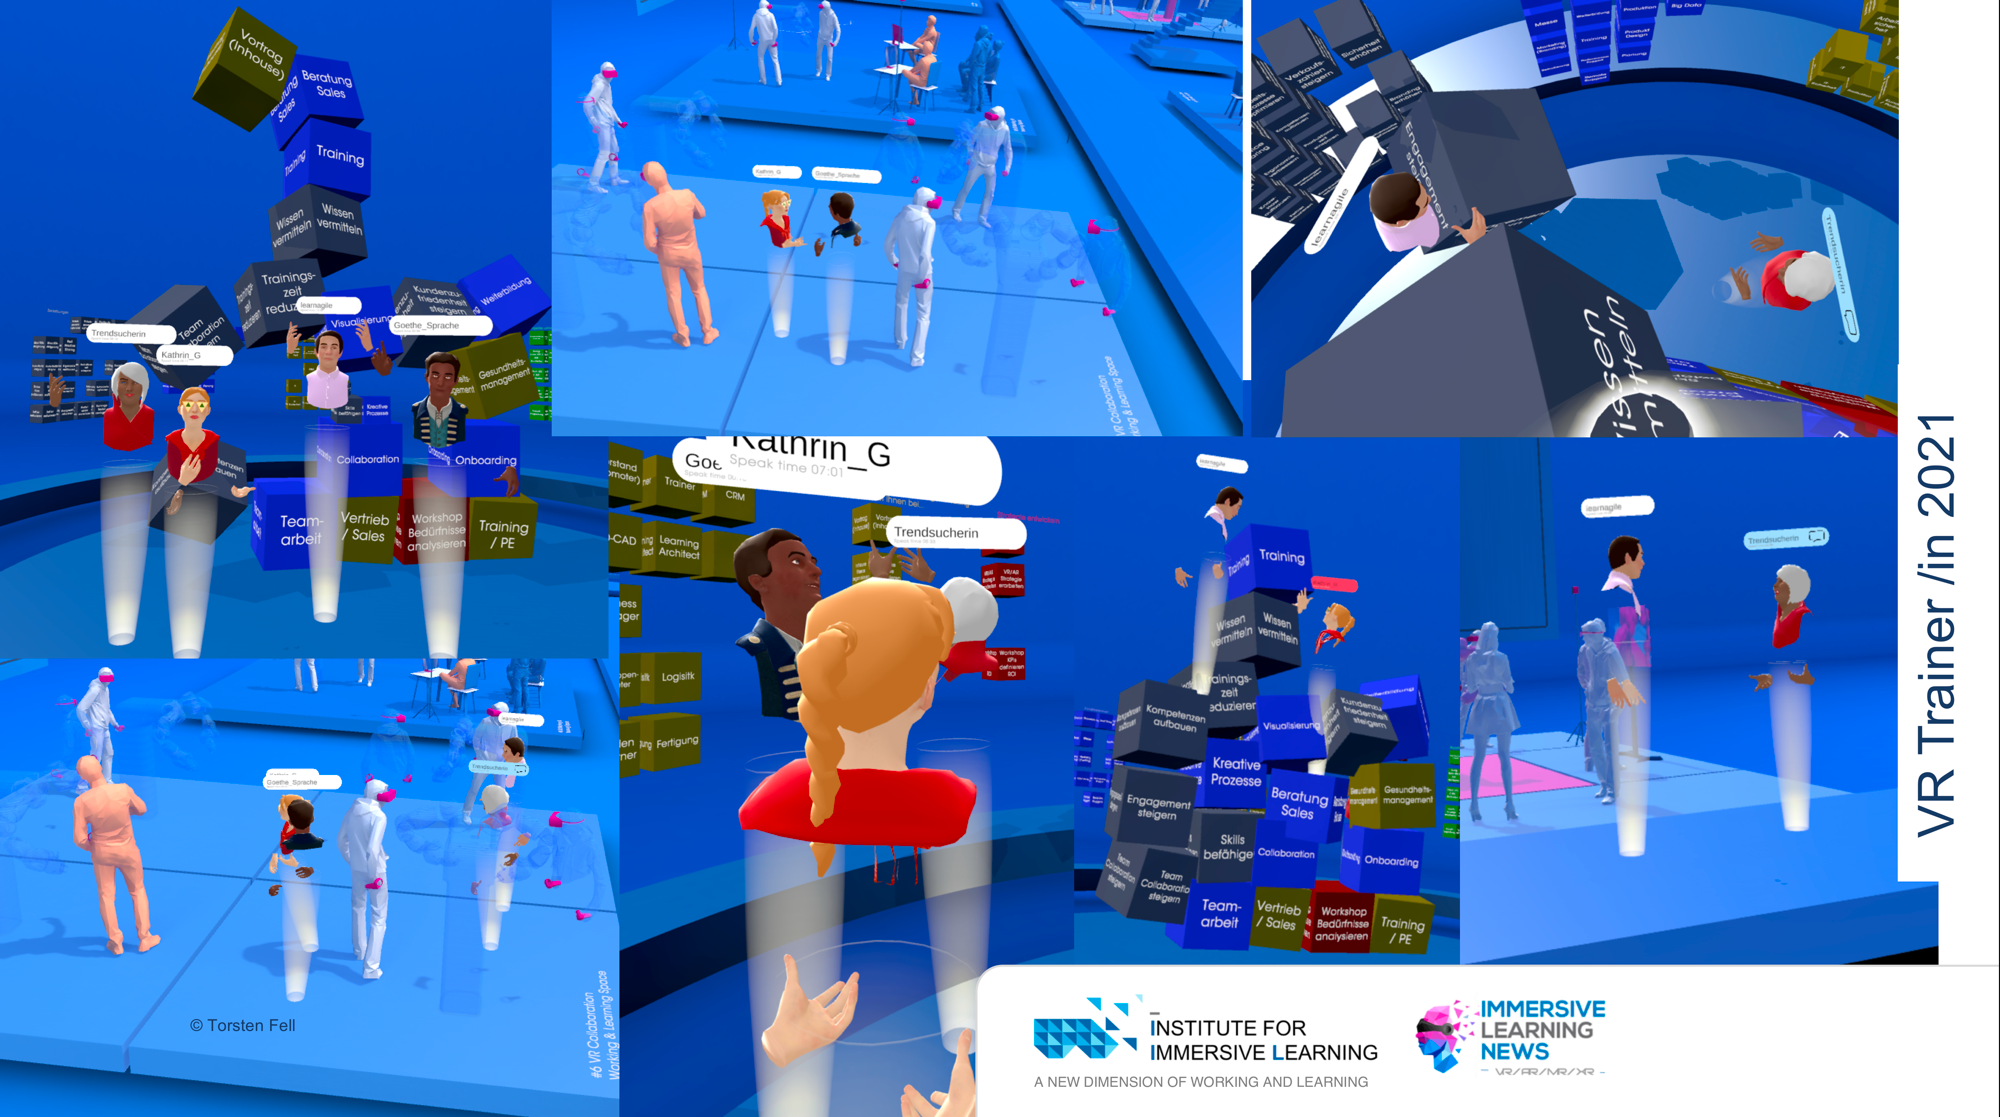 https://www.immersivelearning.institute/wp-content/uploads/2021/03/vr_trainer_2021_2.png